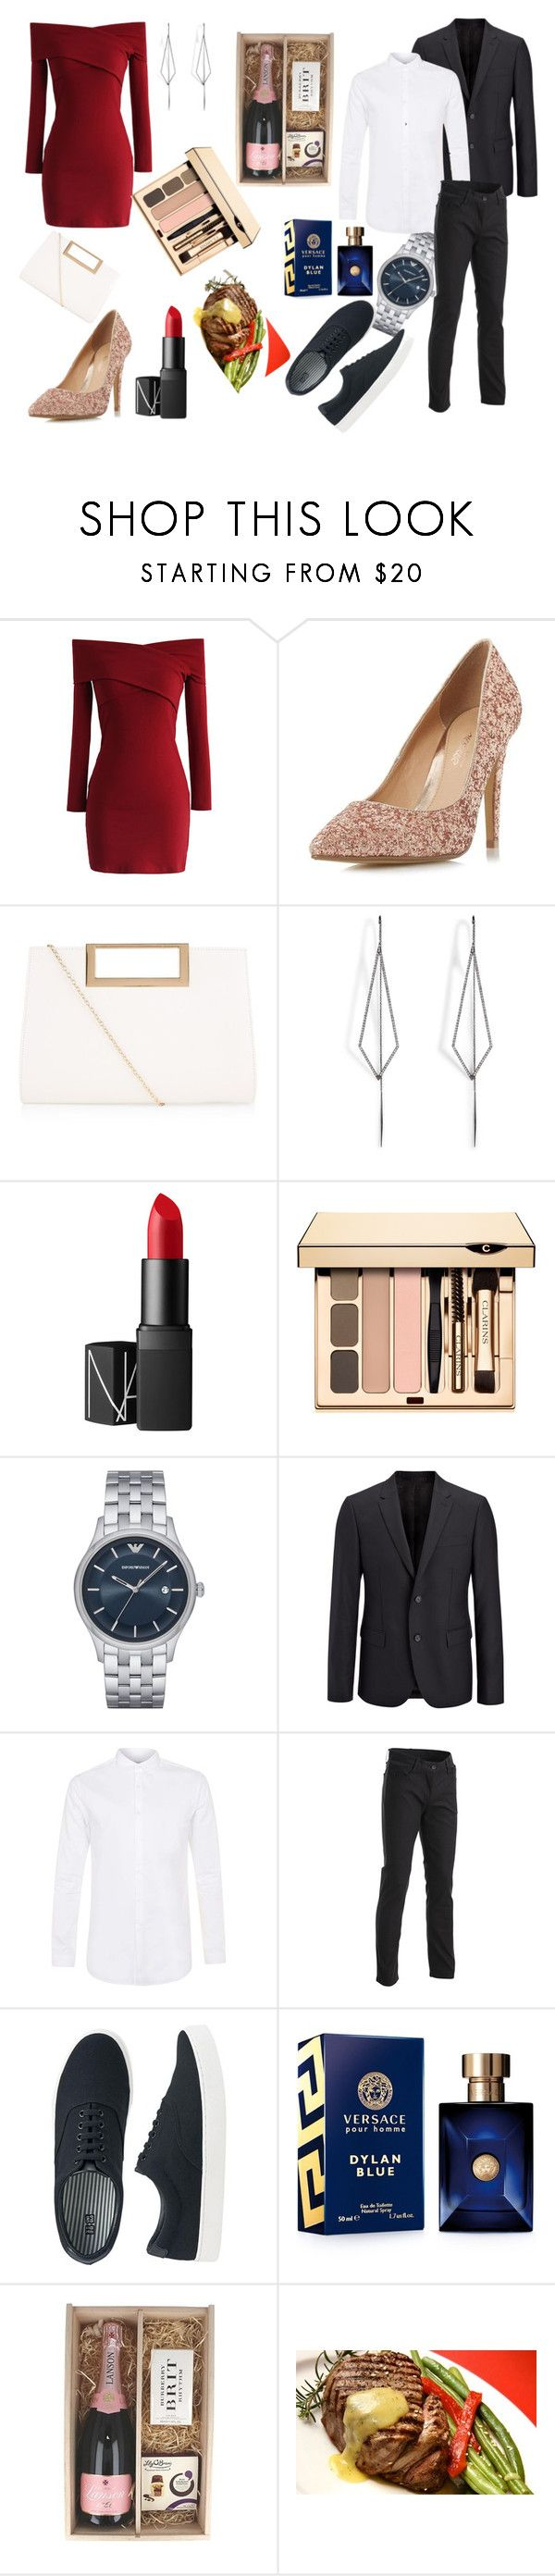 """""""Date night"""" by elmaa-128 ❤ liked on Polyvore featuring Chicwish, Head Over Heels by Dune, New Look, Diane Kordas, NARS Cosmetics, Emporio Armani, Joseph, Topman, Uniqlo and Versace"""